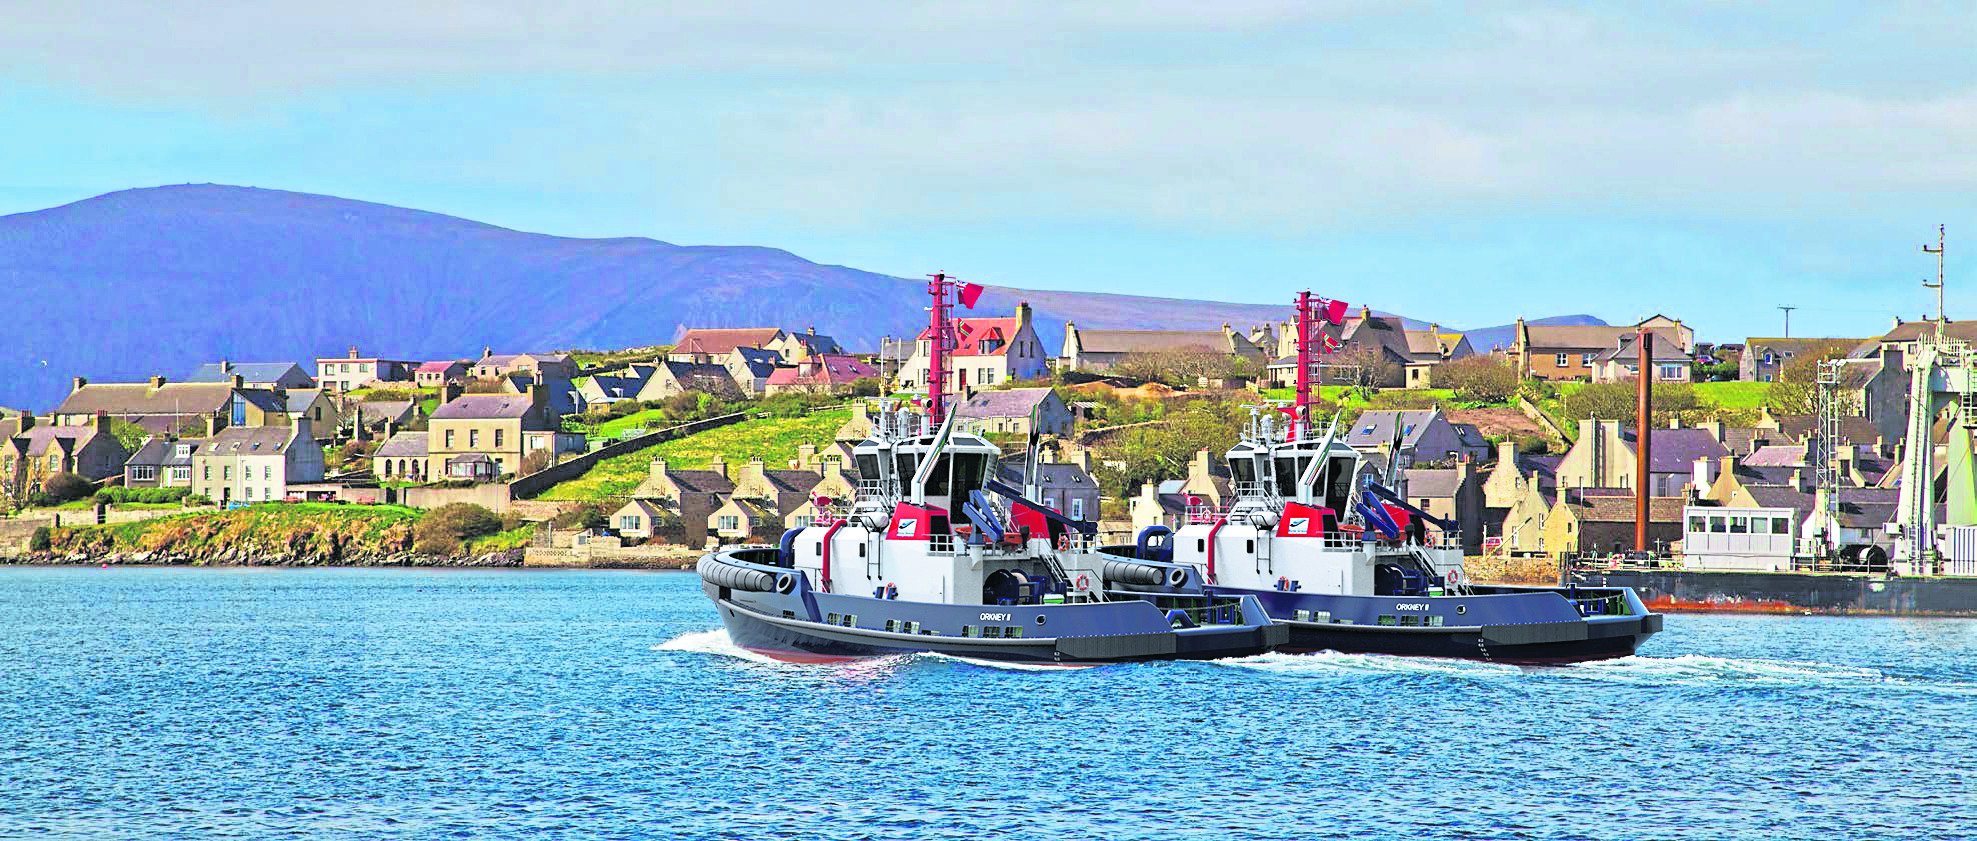 A contract has been signed for two new tugs for Orkney Islands Council's Marine Services.    The design and build contract for the 32-metre tugs was secured by Sanmar Shipyards of Turkey.      Construction is due to take place at Sanmar's new specialist tug building facility, all of which is undercover, at Altinova about an hour south of Istanbul.   pic from Orkney Islands Council